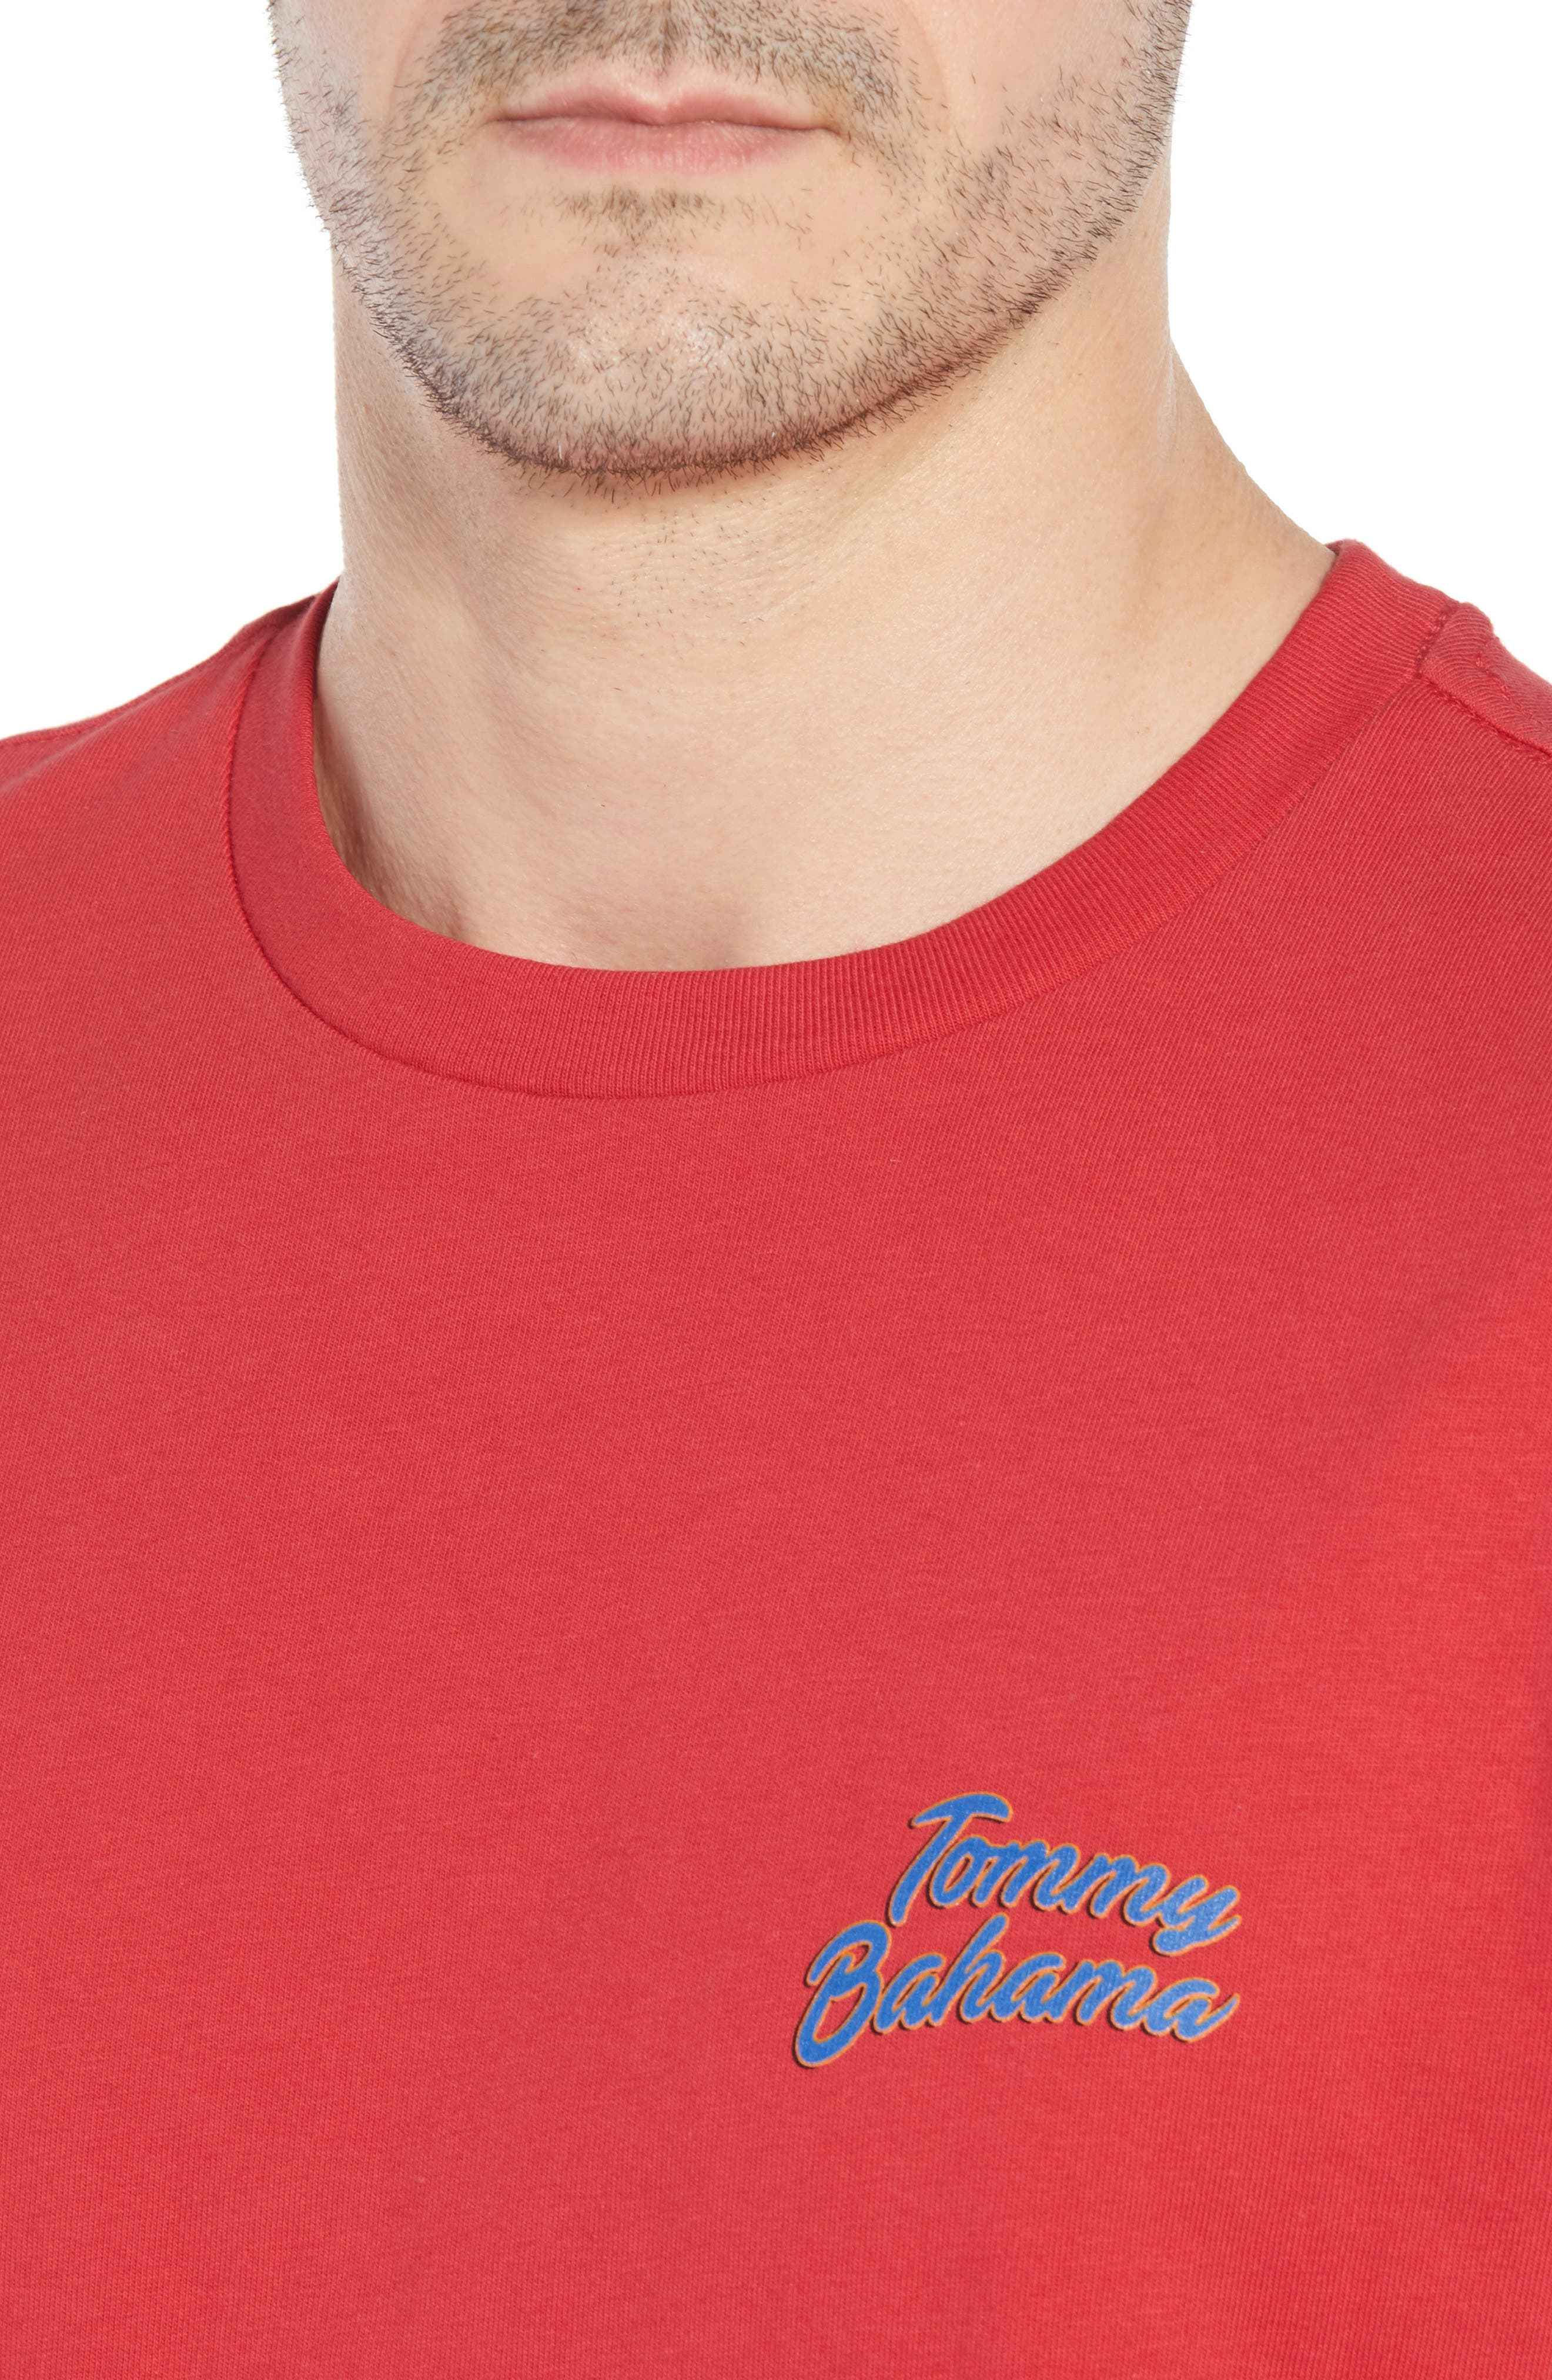 Thirst Base Graphic T-Shirt,                             Alternate thumbnail 4, color,                             LUCKY RED